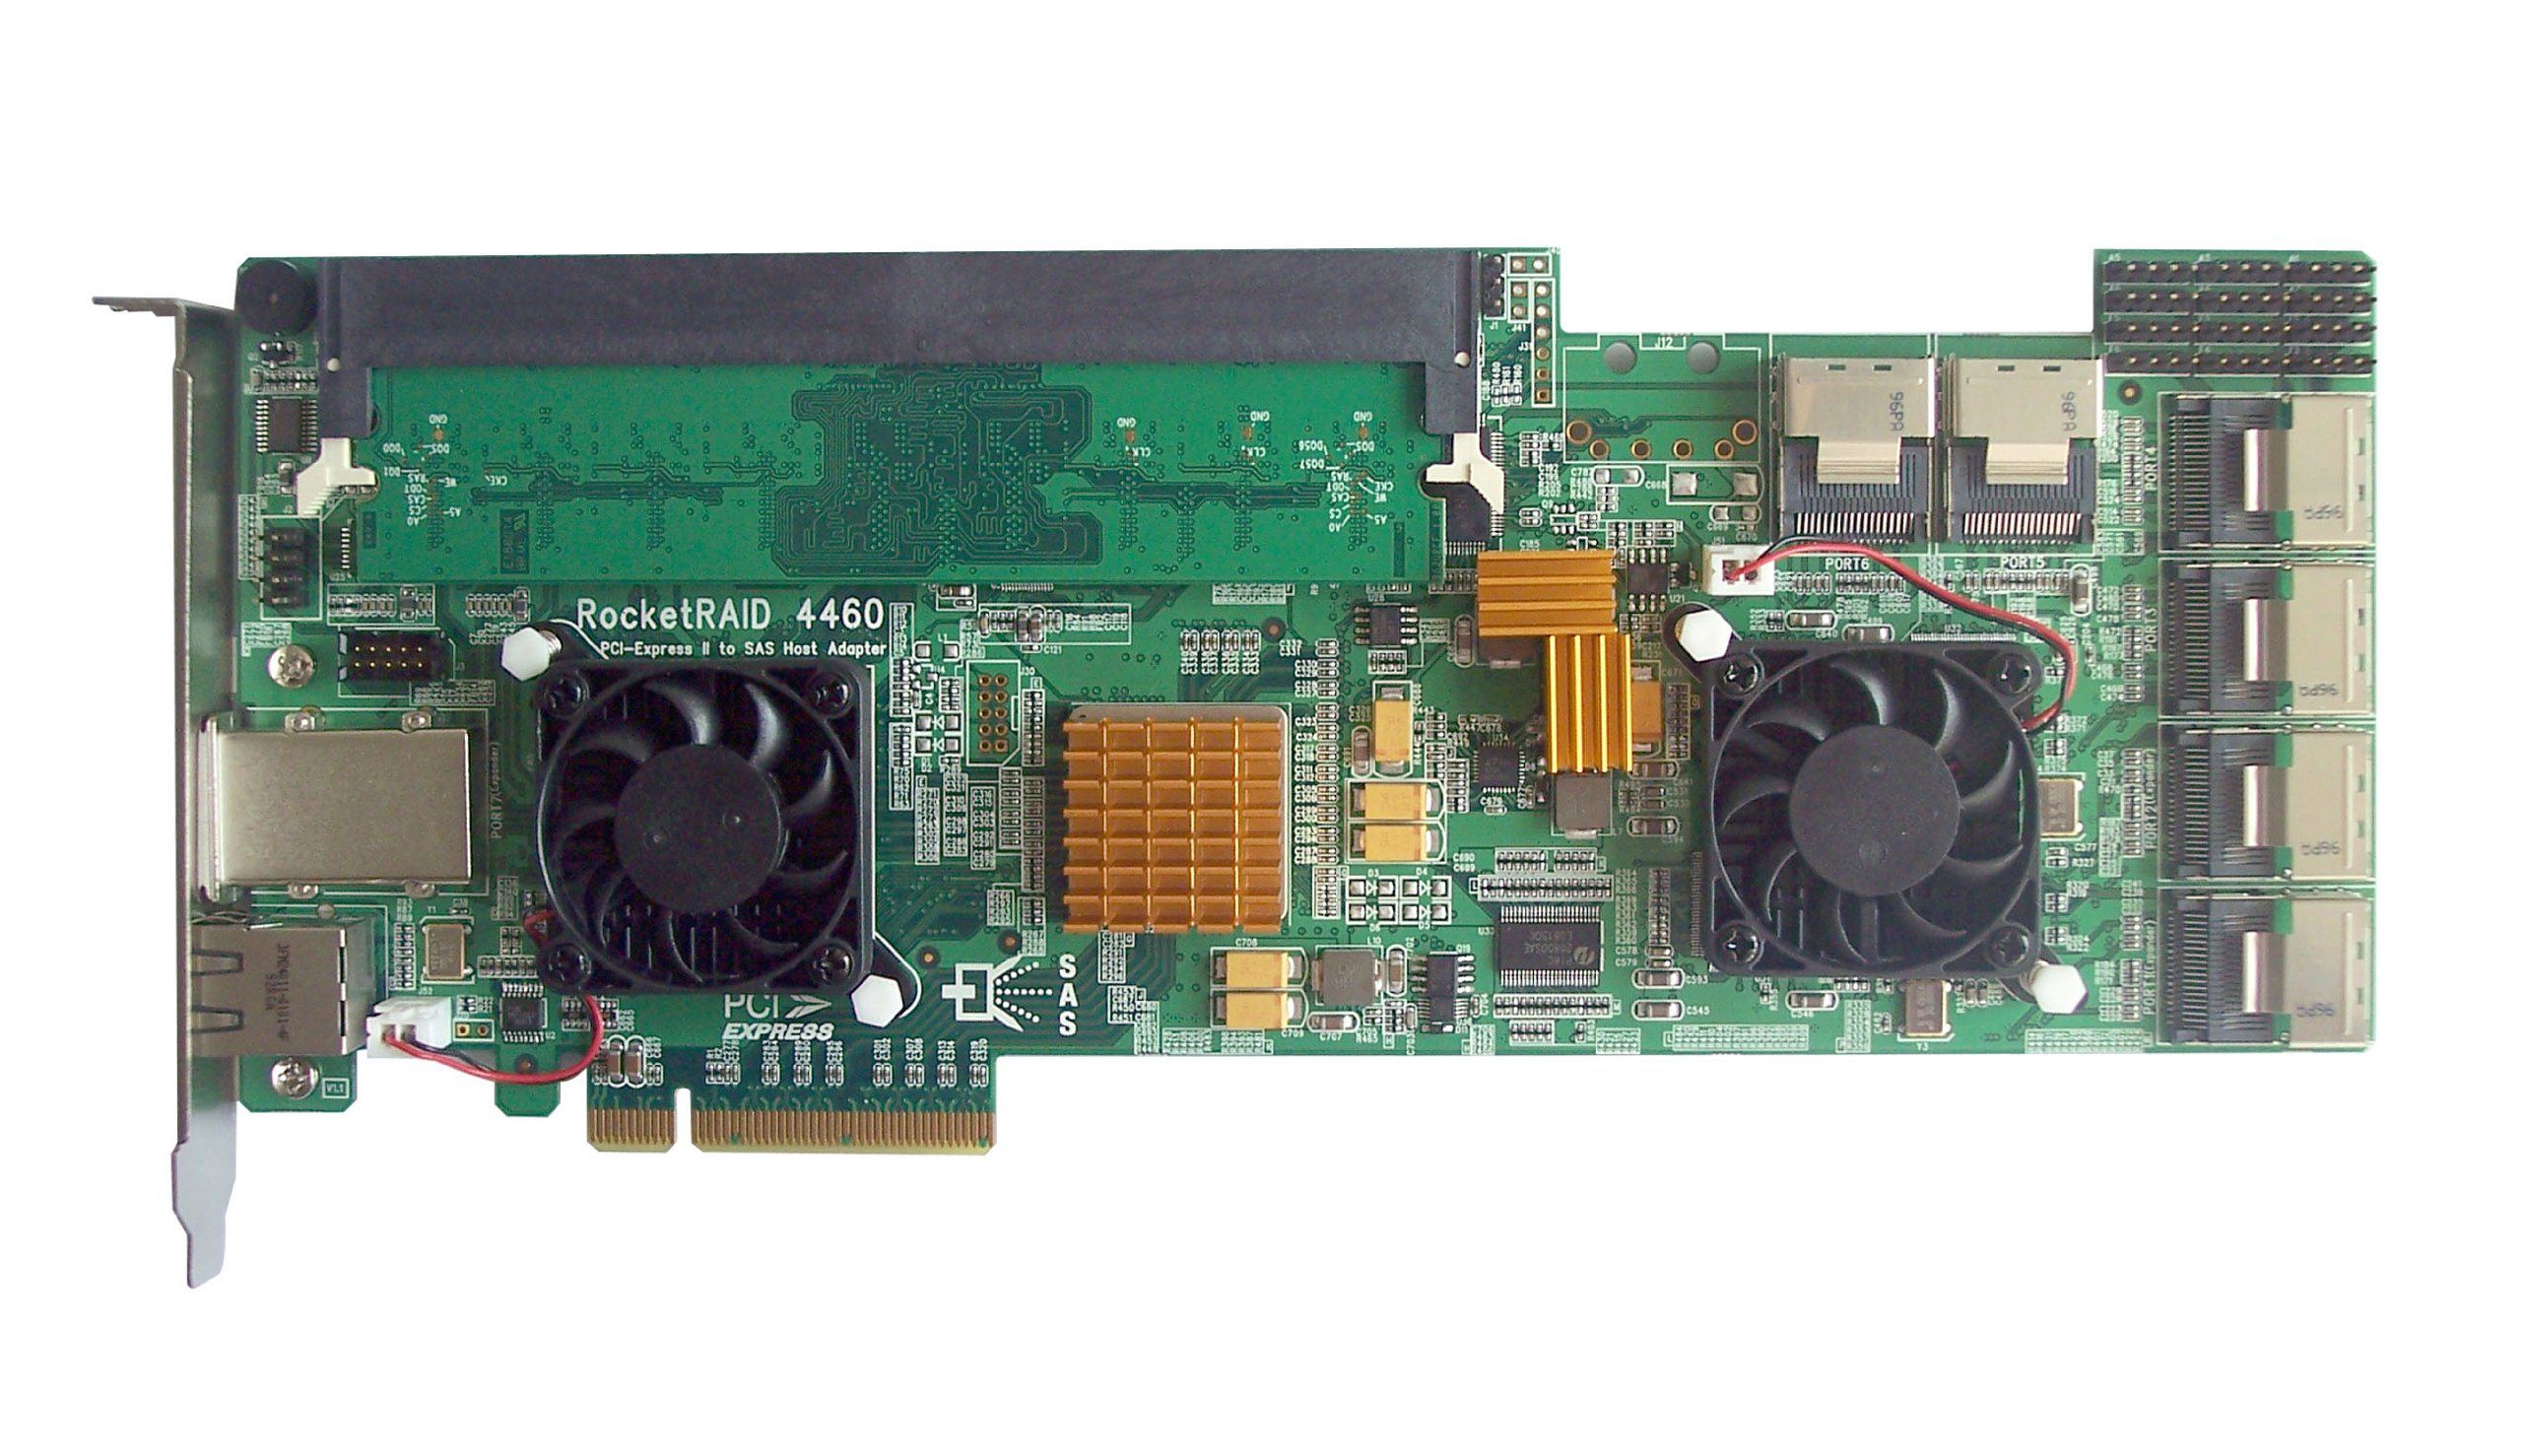 HighPoint RocketRAID 4460 24-Port PCI-Express 2.0 x8 SAS RAID Controller